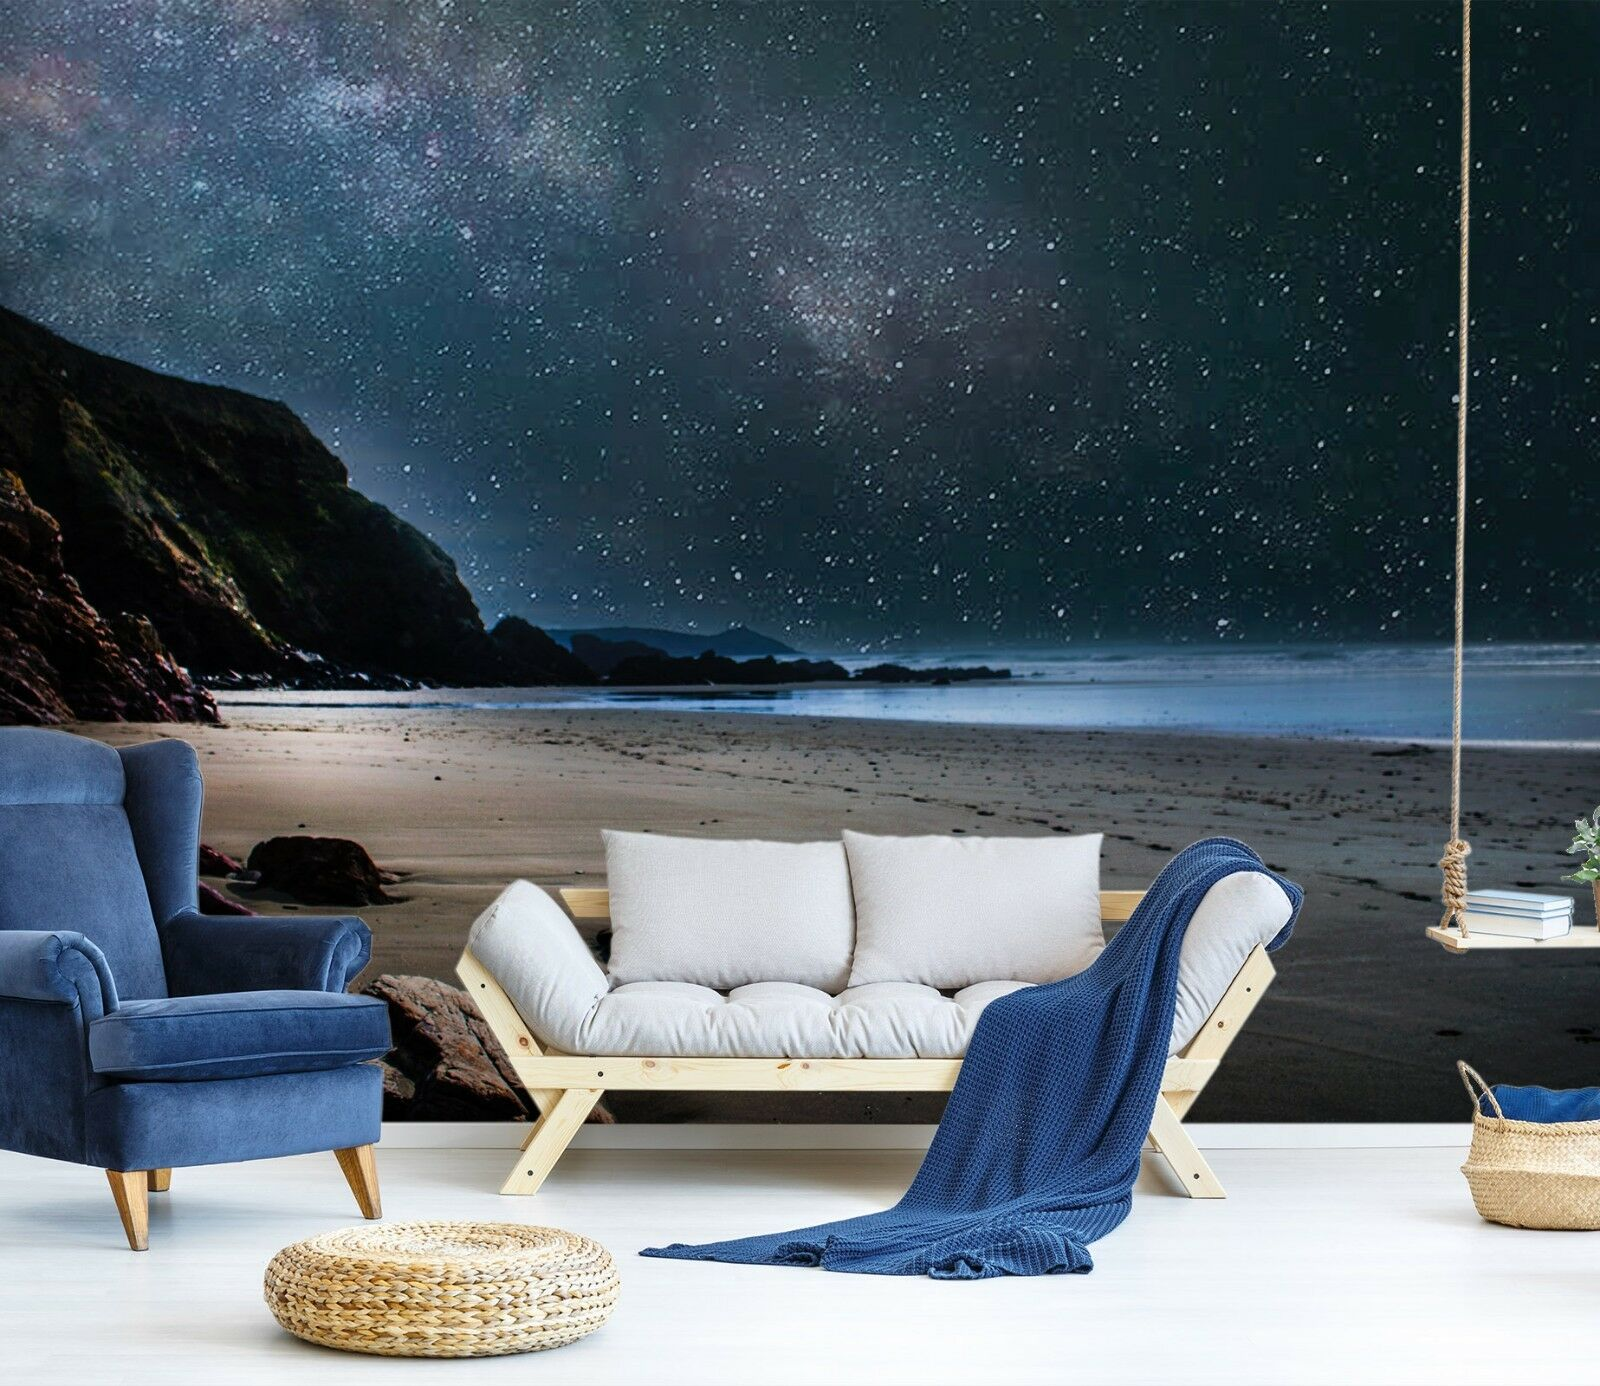 3D Sea Beach Night 7087 Wallpaper Mural Paper Wall Print Indoor Murals CA Summer